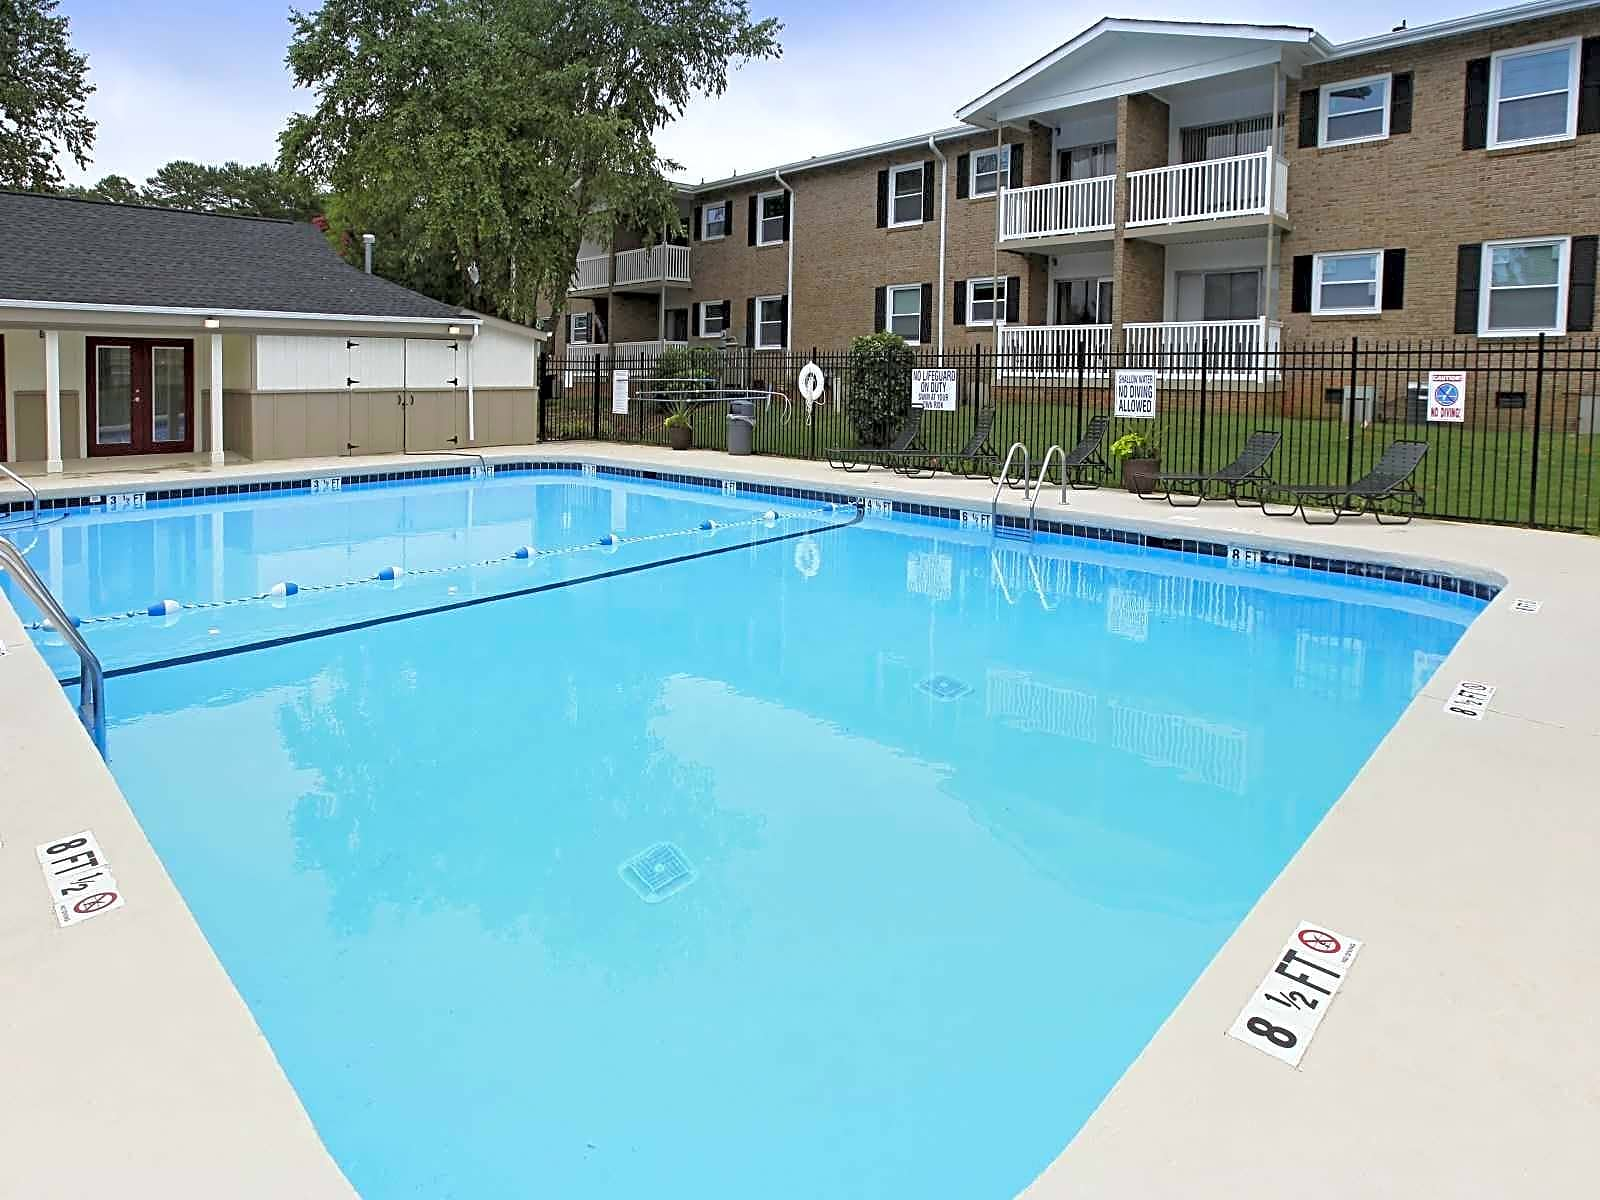 Photo: Spartanburg Apartment for Rent - $780.00 / month; 2 Bd & 1 Ba